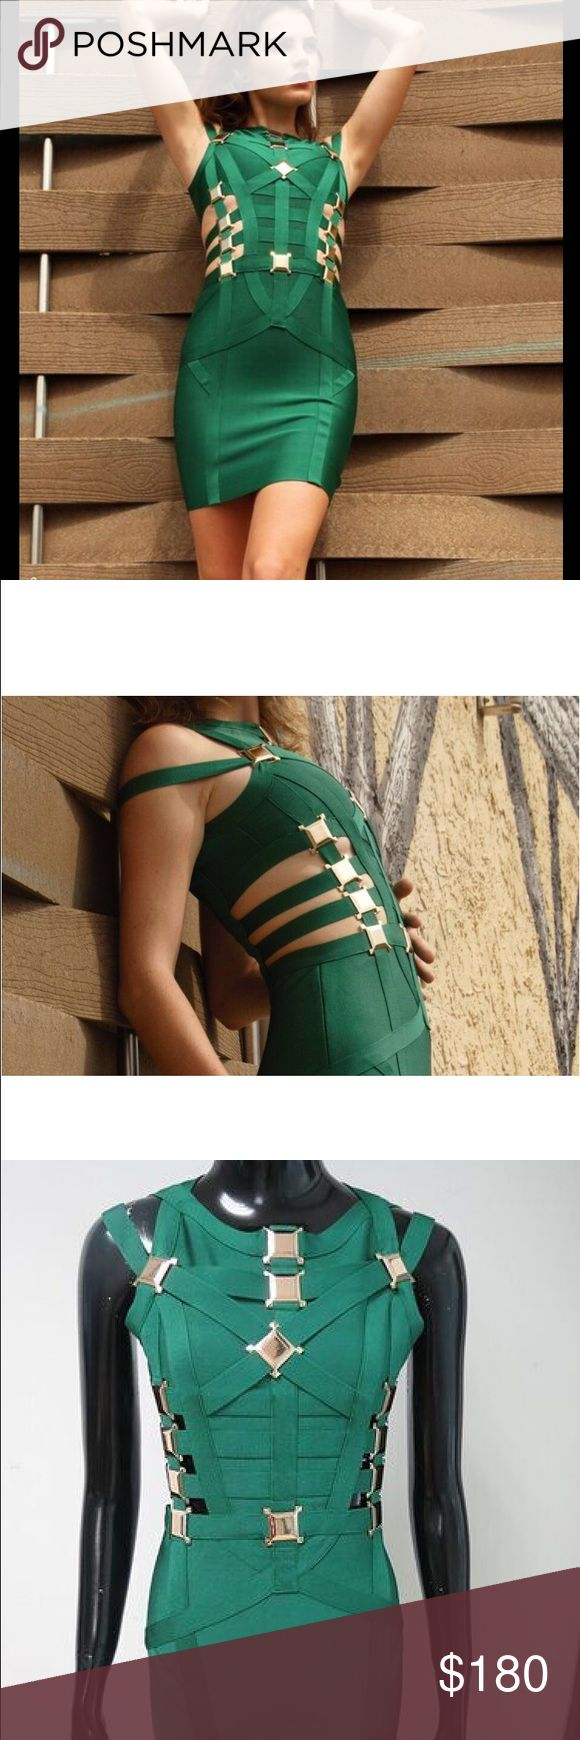 Green embellished bandage dress Our new 'Hester' Green & Gold Metal Cut out bandage dress is super sexy. The high neck, waist cut out sleeveless fit looks amazing on all figures whilst the gold metal squares add a touch of celebrity luxury. Wear with sky high heels and keep the jewelry simple for a red carpet look. Please note; you will stop traffic in this dress. Length: Approx. 33 Inches Fabric: 90% Rayon + 9% Nylon + 1% Spandex Herve Leger Dresses Mini